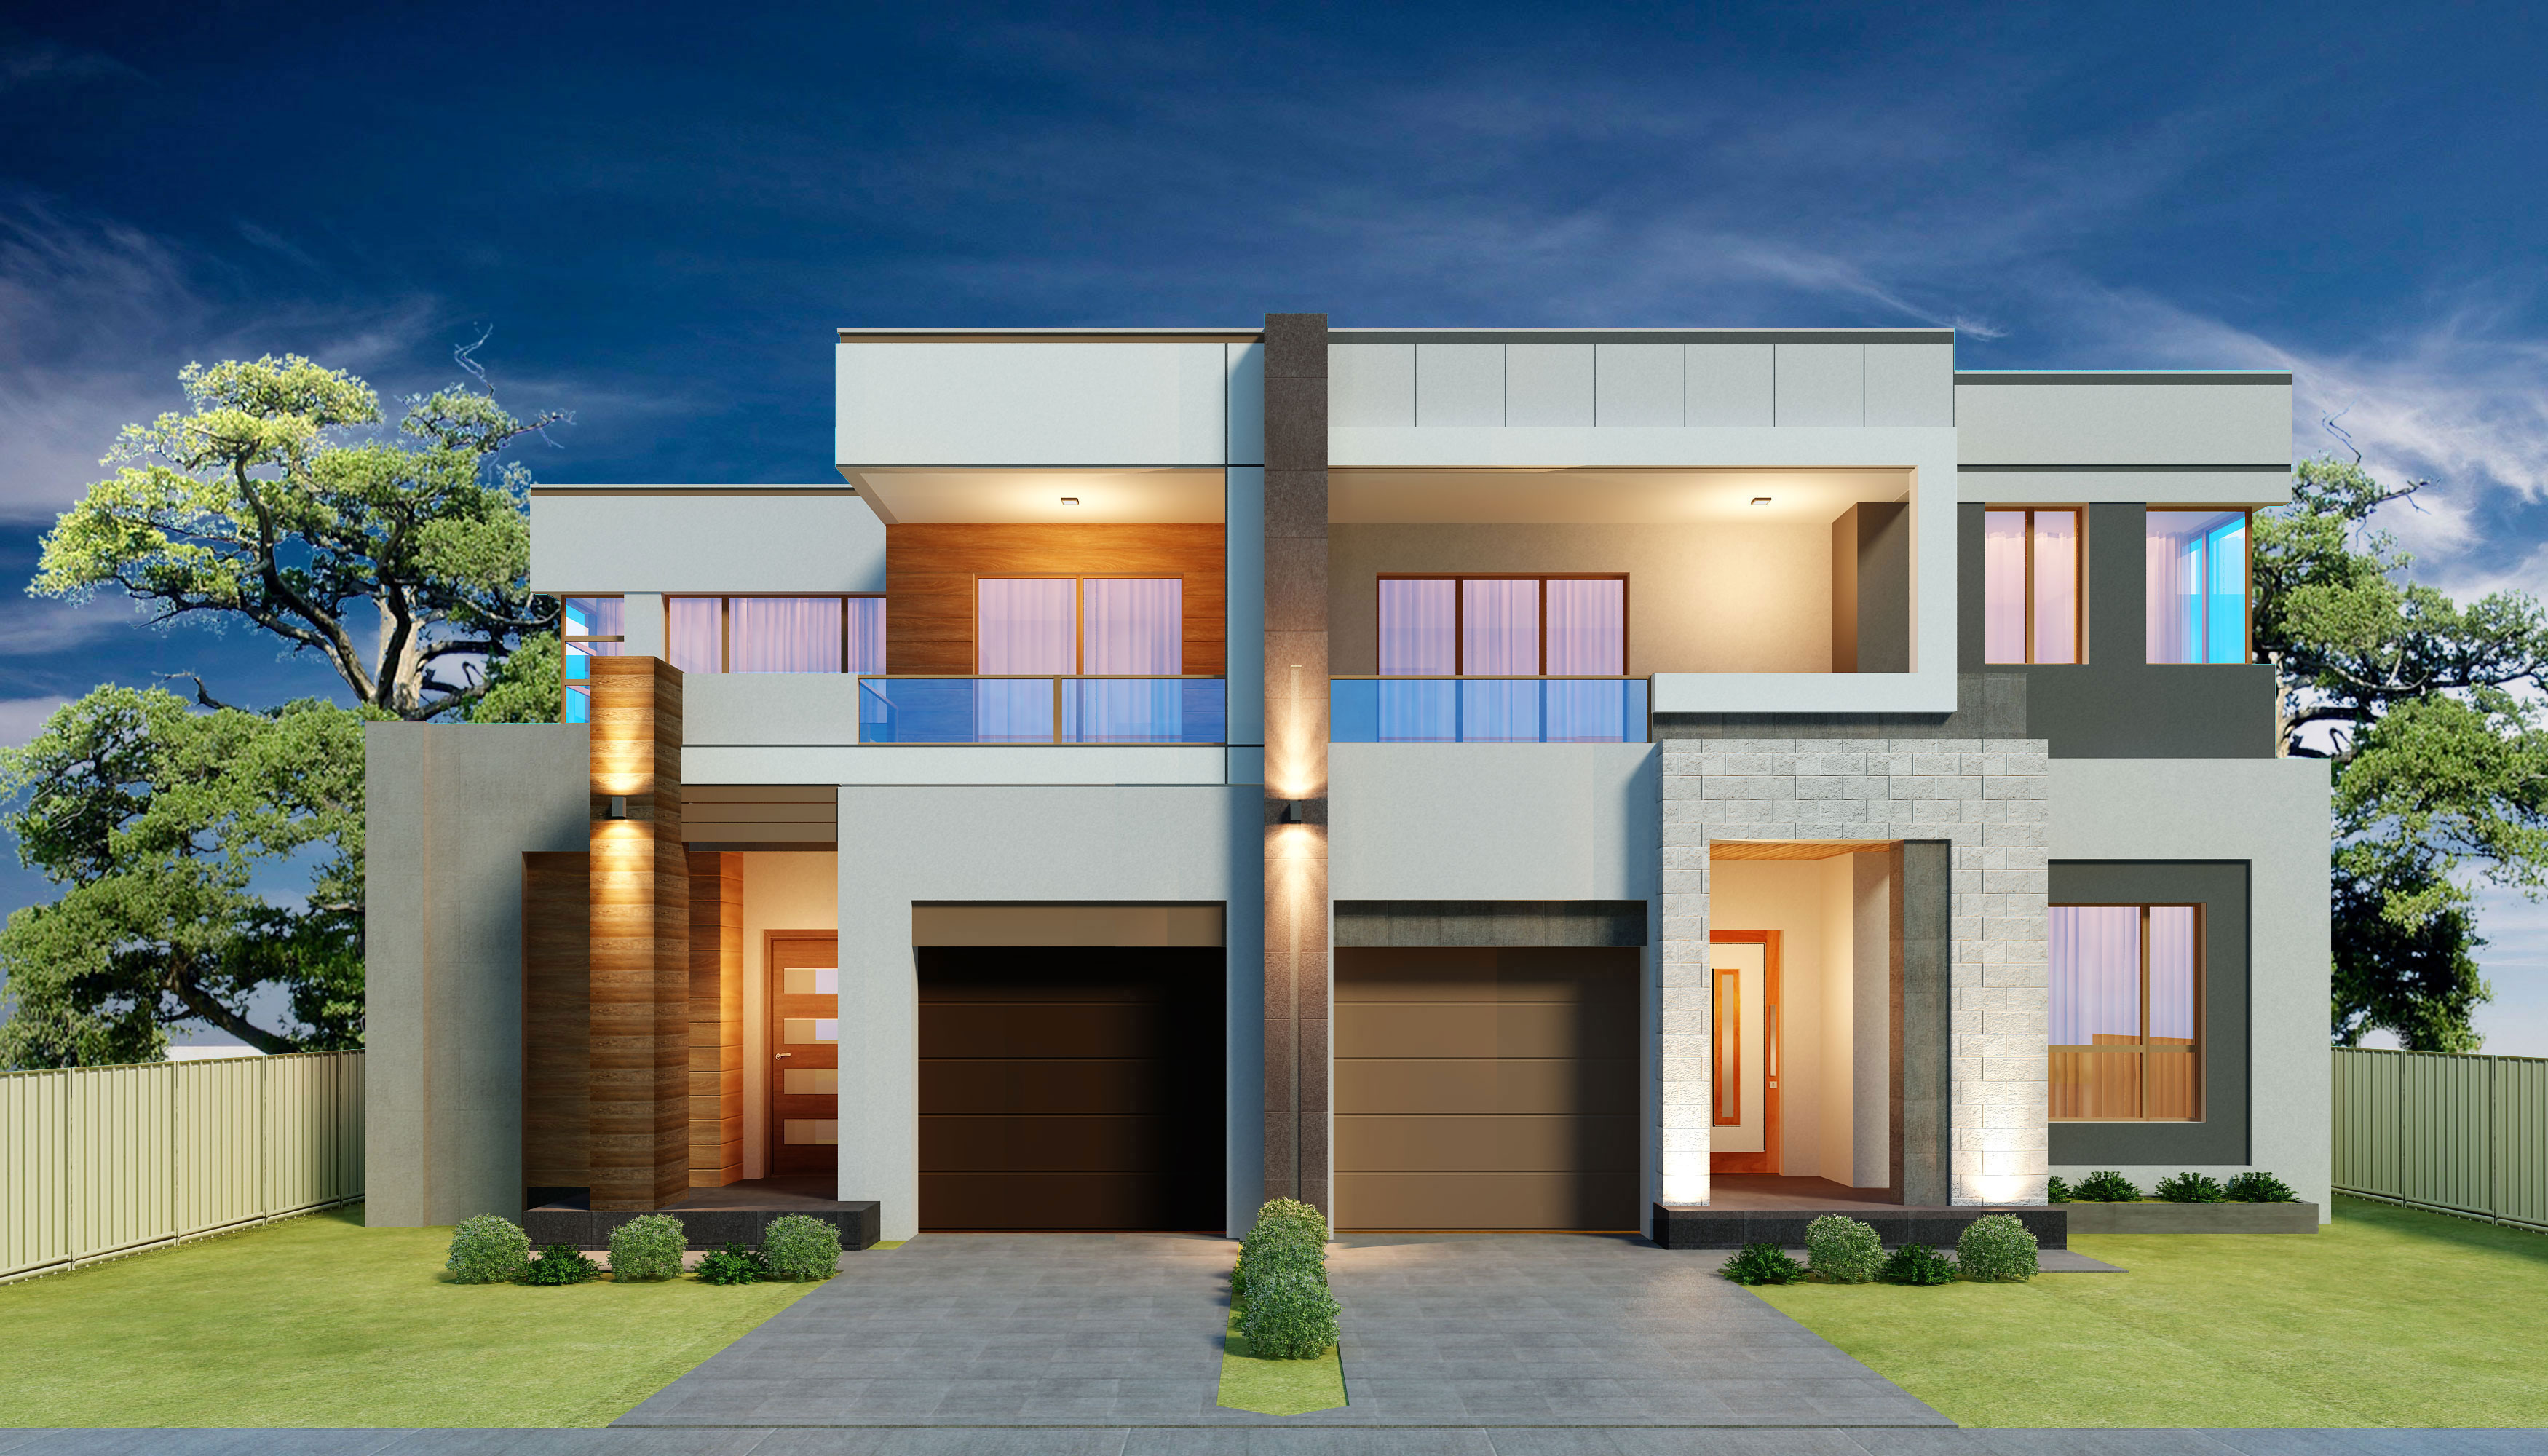 Brothers Front facade - View Indian Style Small Duplex House Design In India Gif